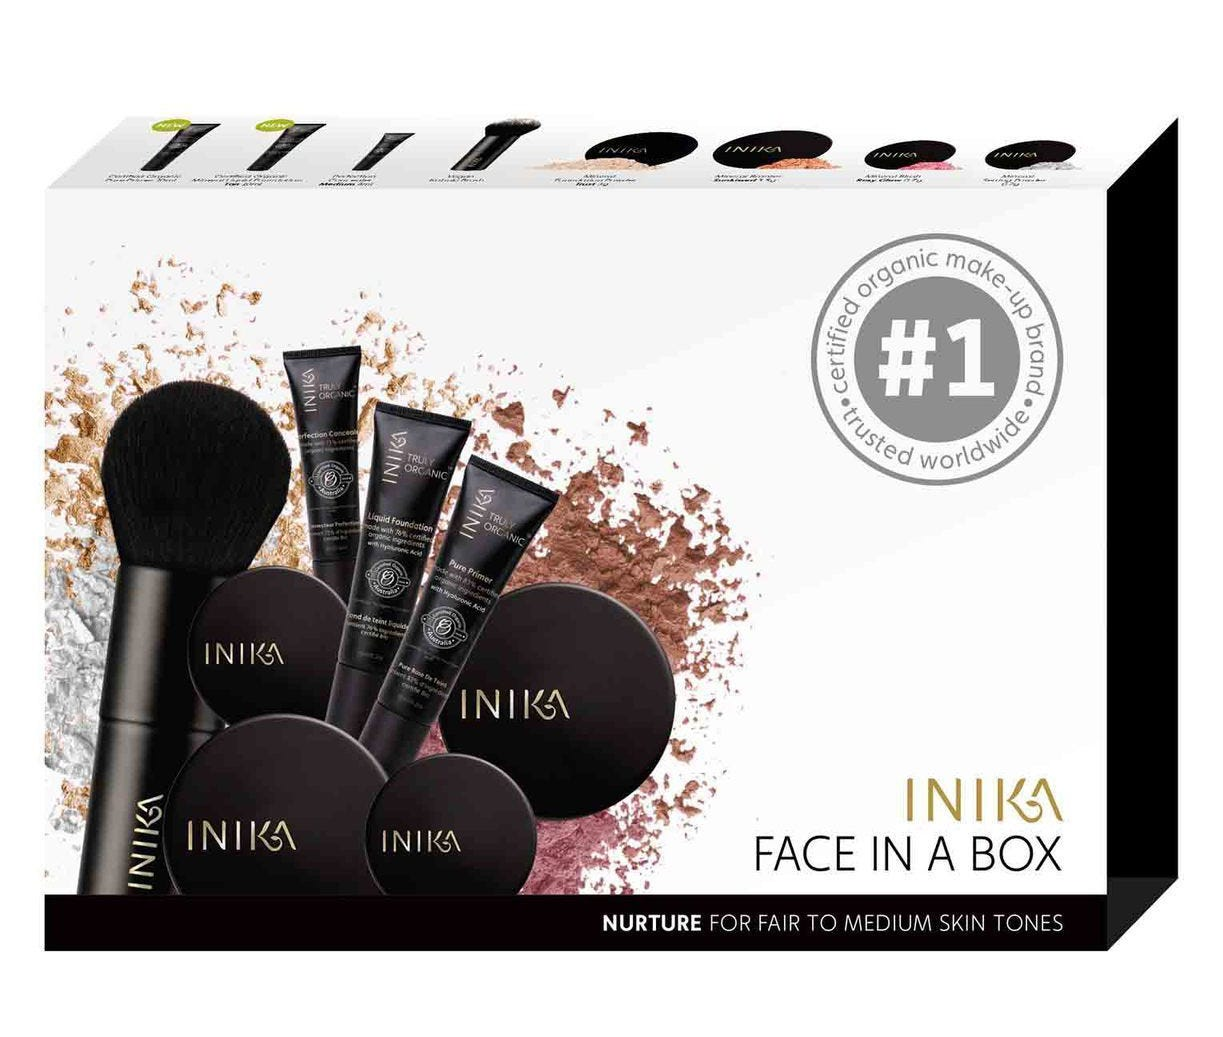 Inika Face in a Box Kit - Nurture - Fair to Medium Skin